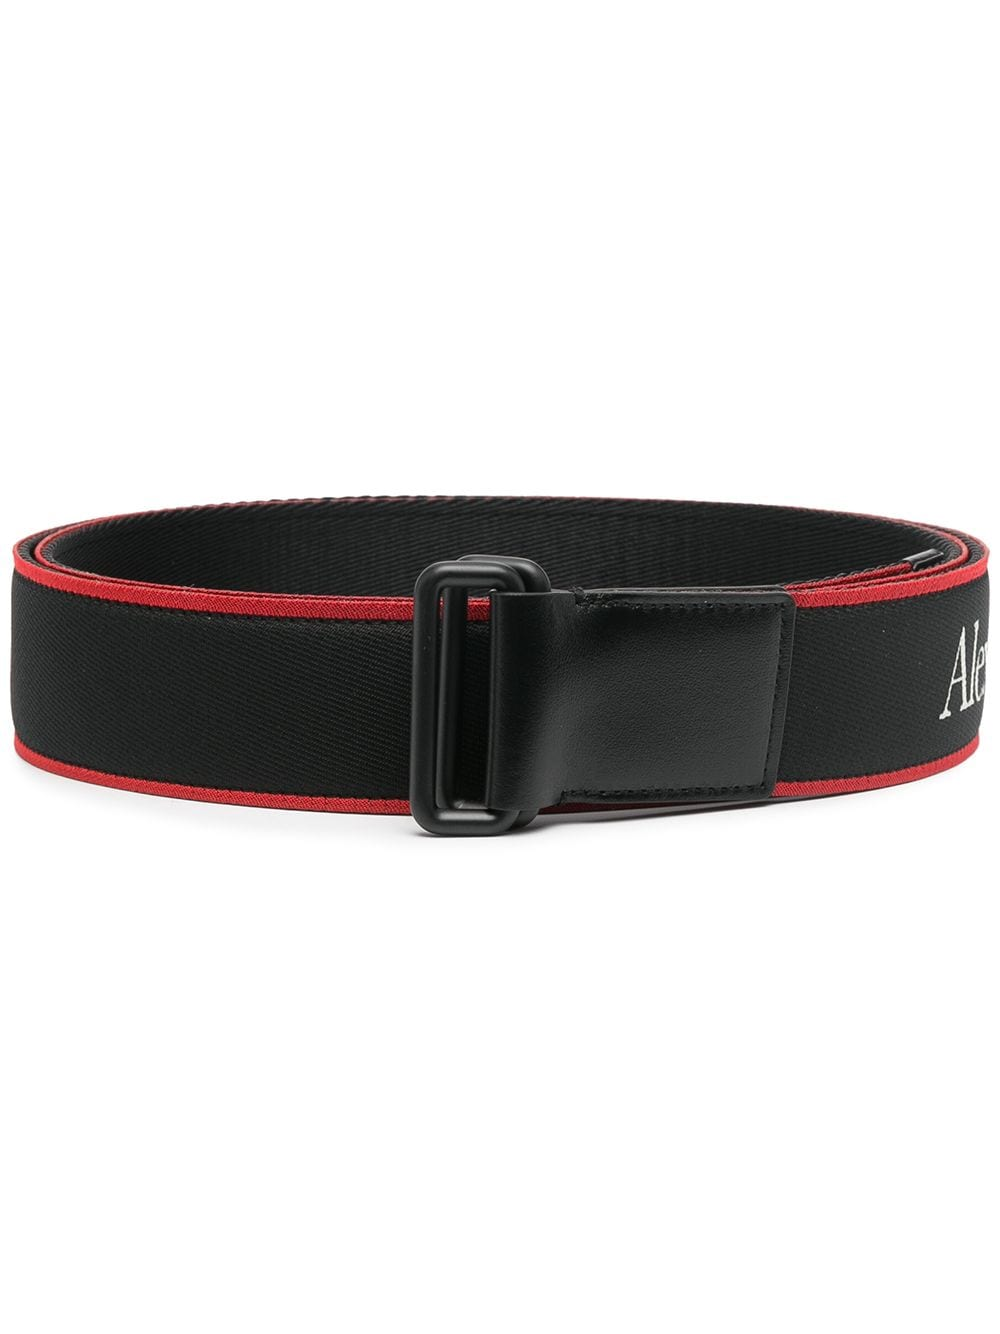 ALEXANDER MCQUEEN Logo Print Adjustable Belt Black/Red - Maison De Fashion